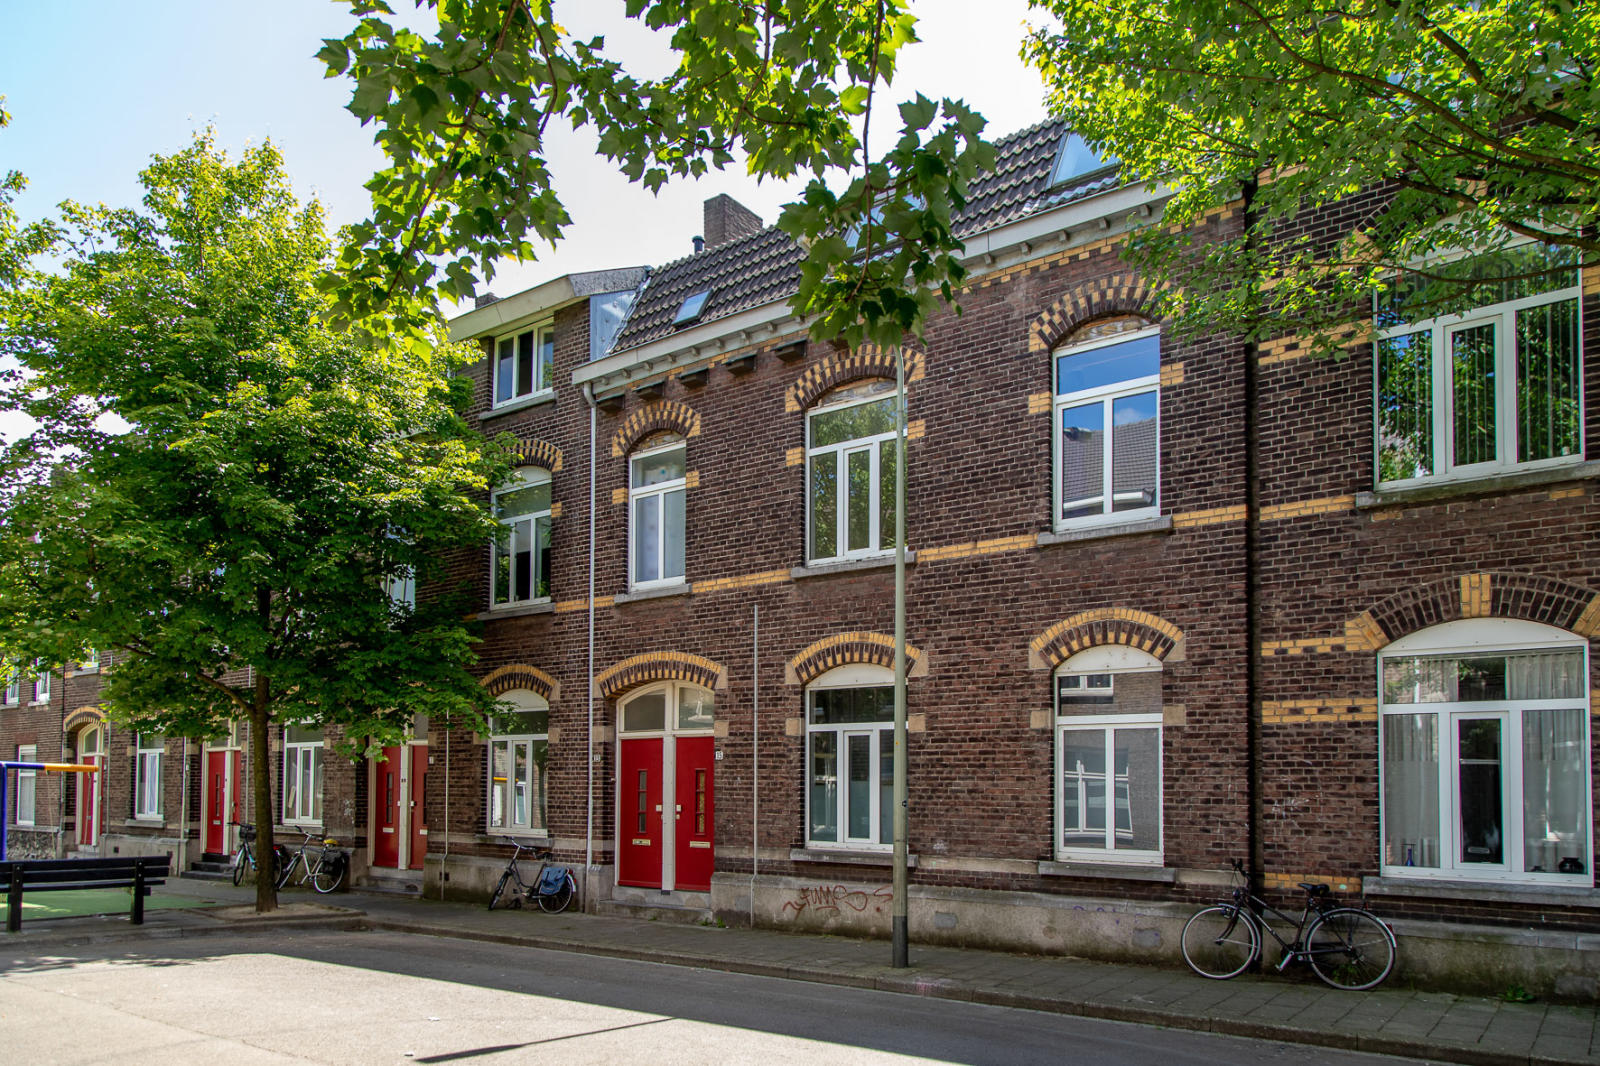 LRCoclerstraat 1